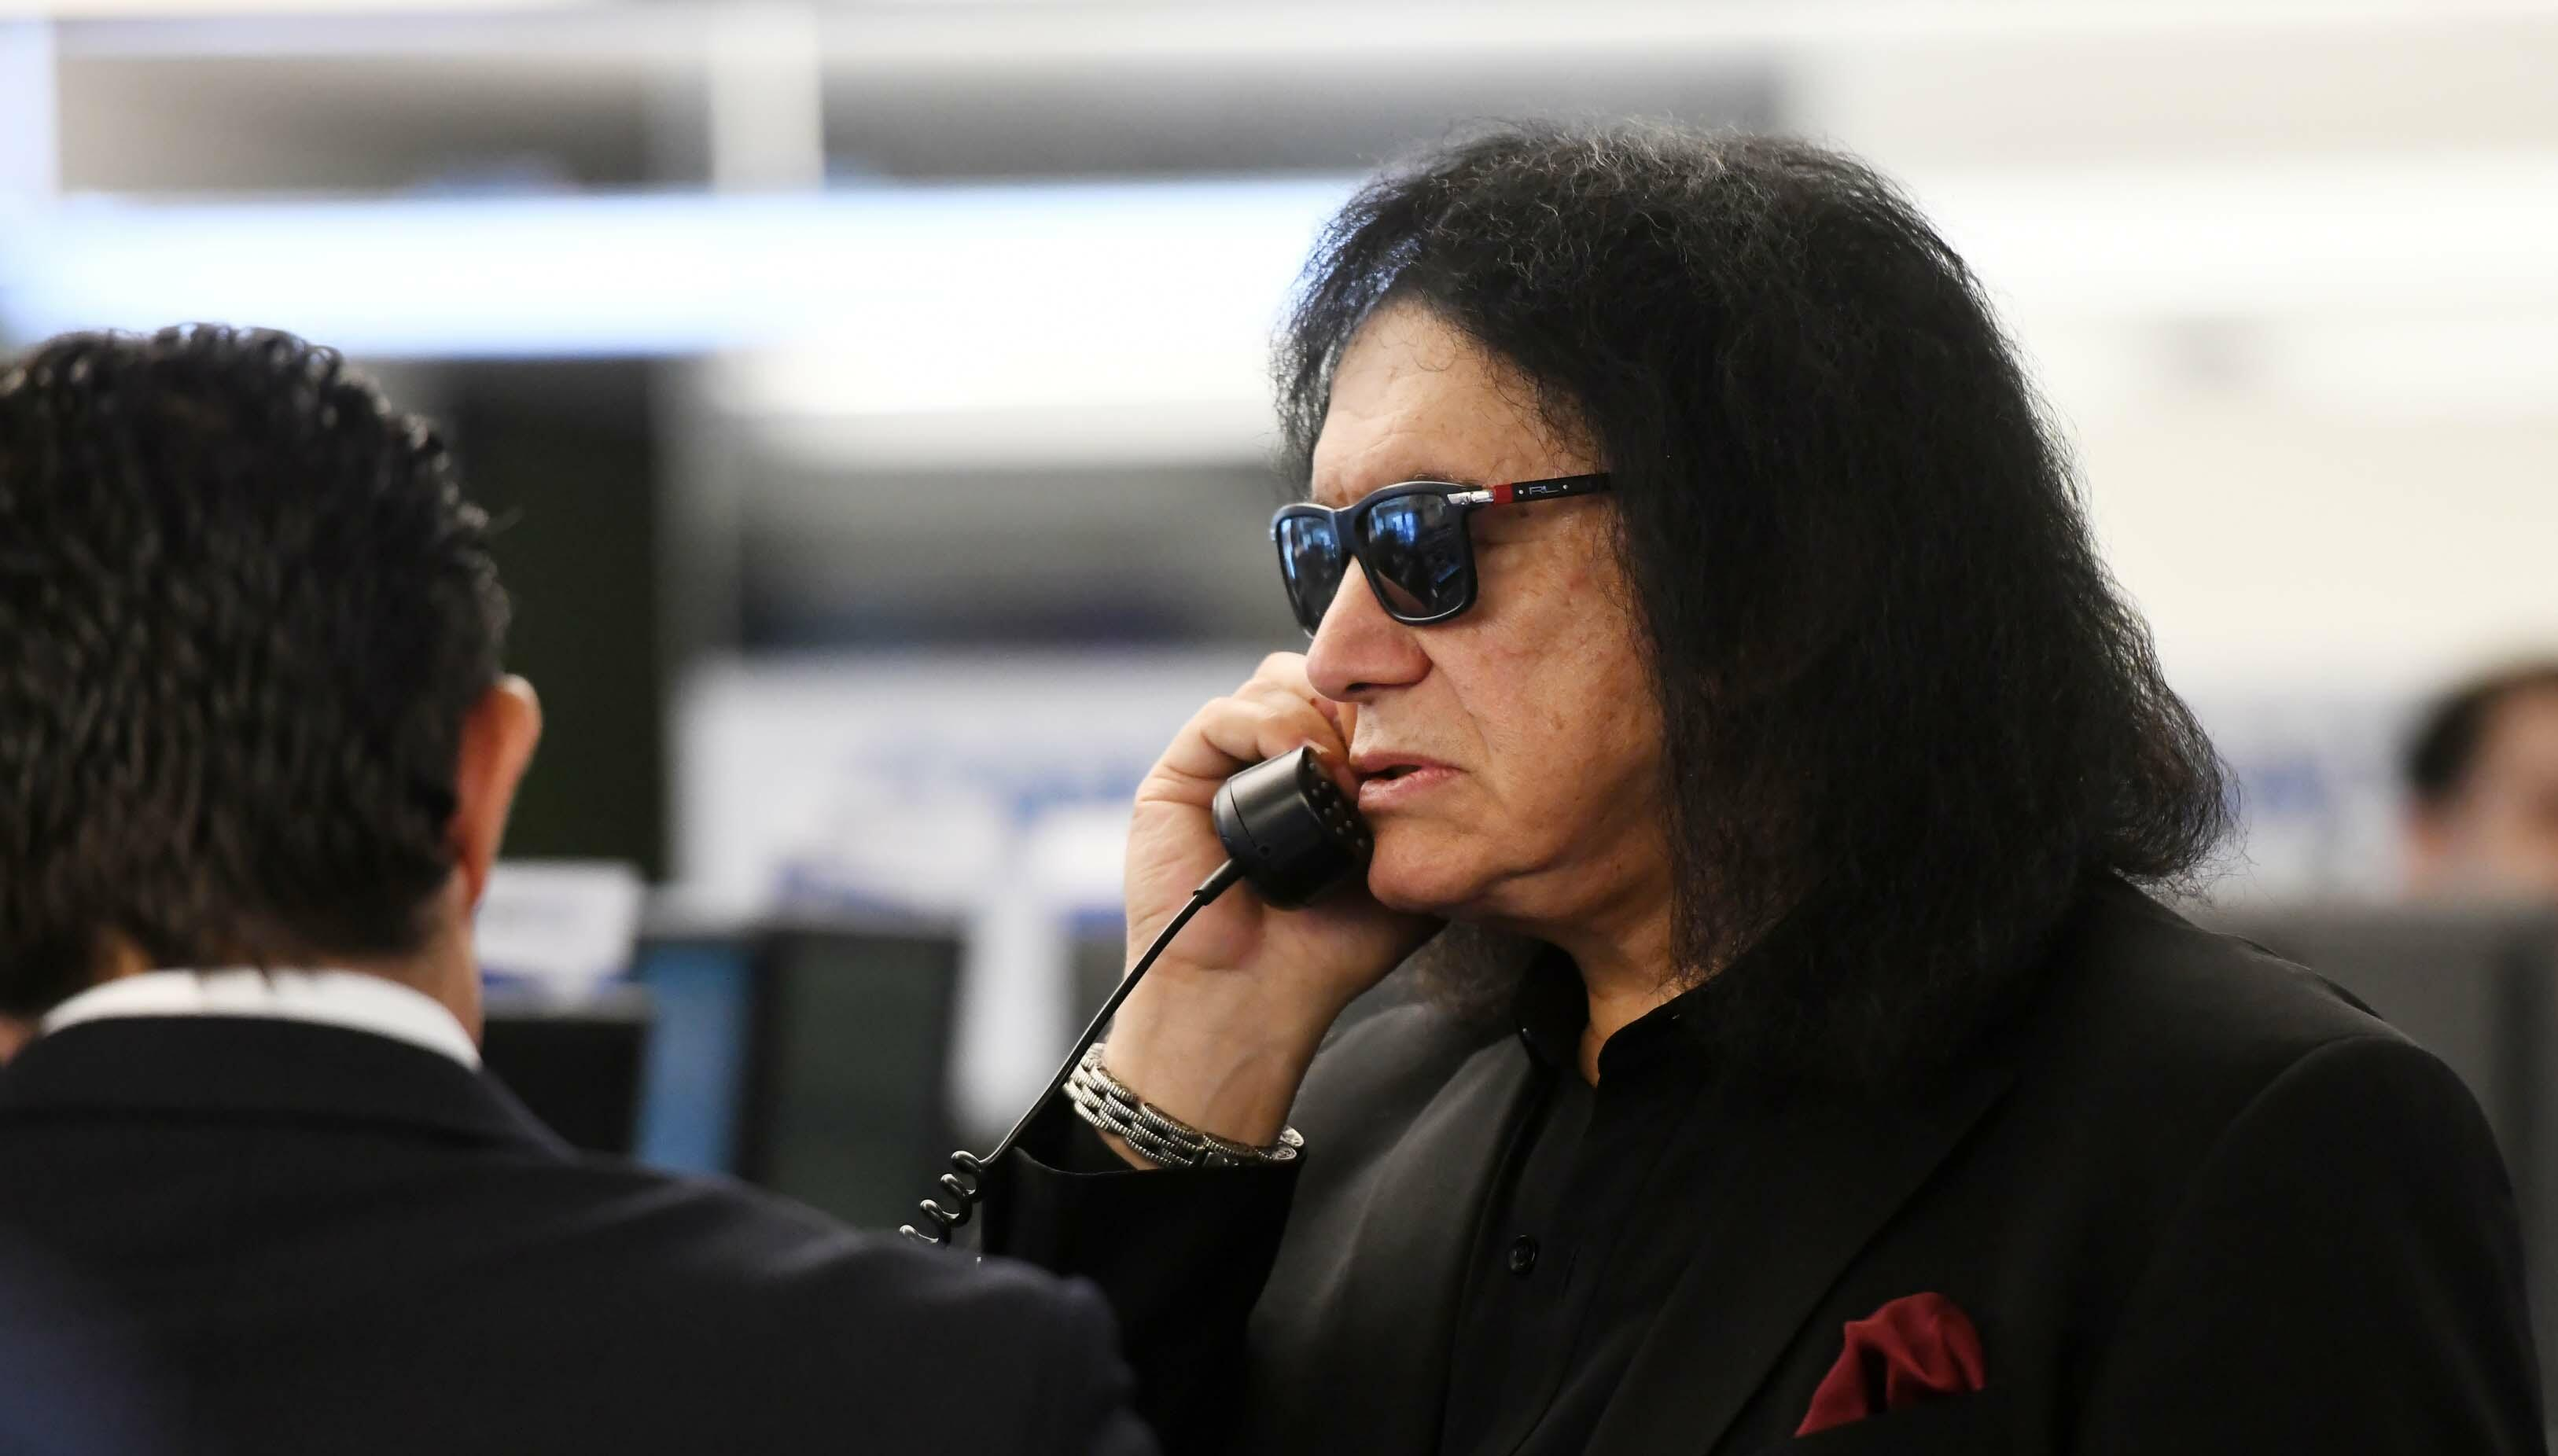 KISS Frontman Gene Simmons' Cereal Hack Is Melting Down Social Media